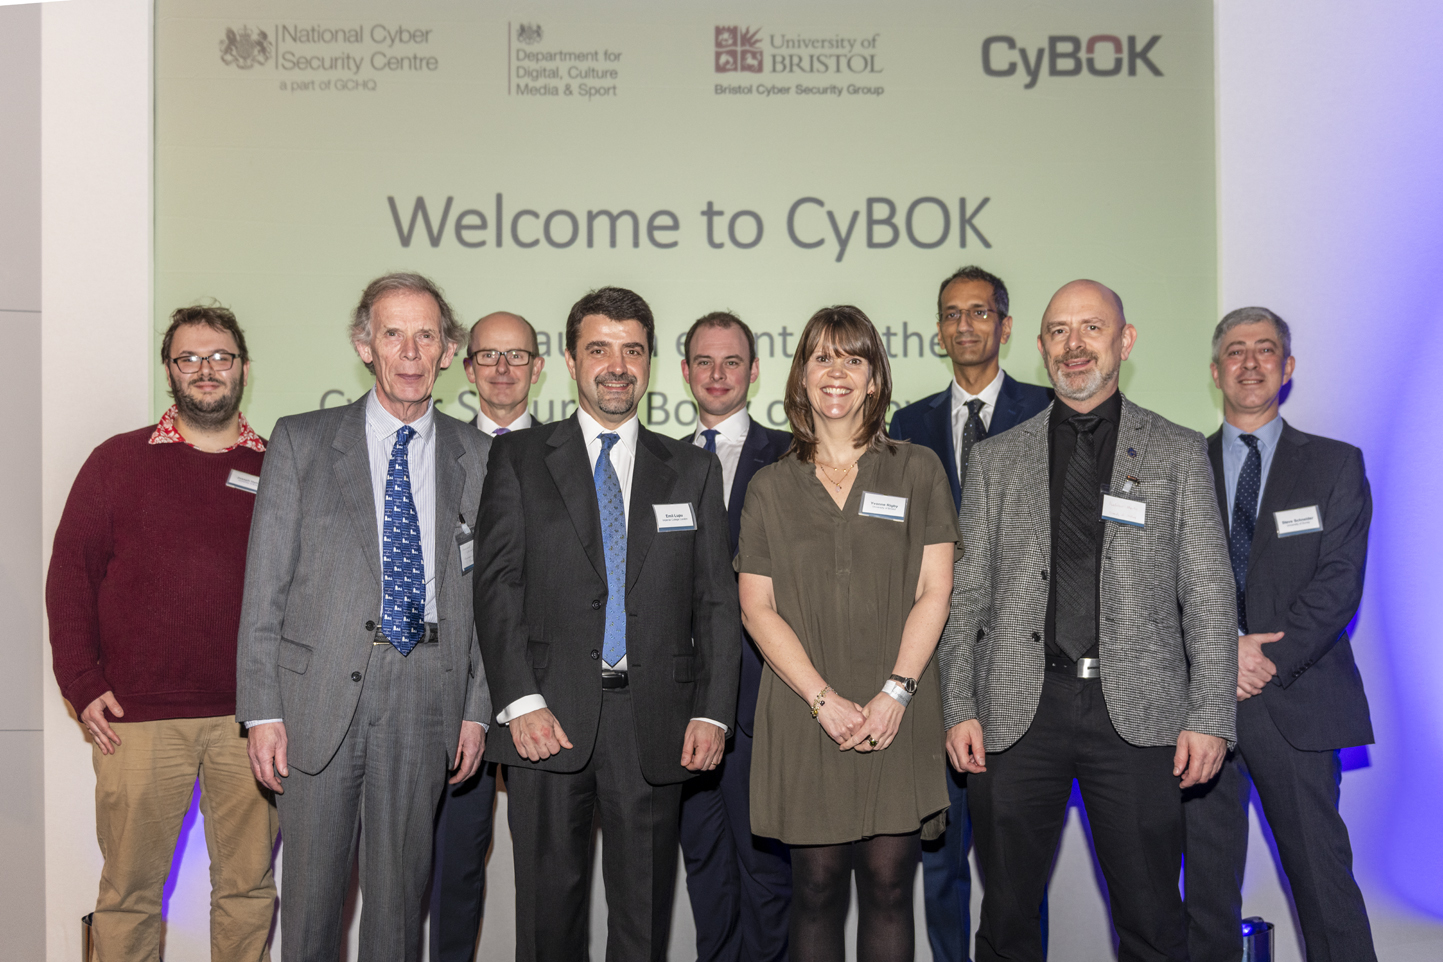 Launch of the CyBOK cyber security guide at London's Science Museum